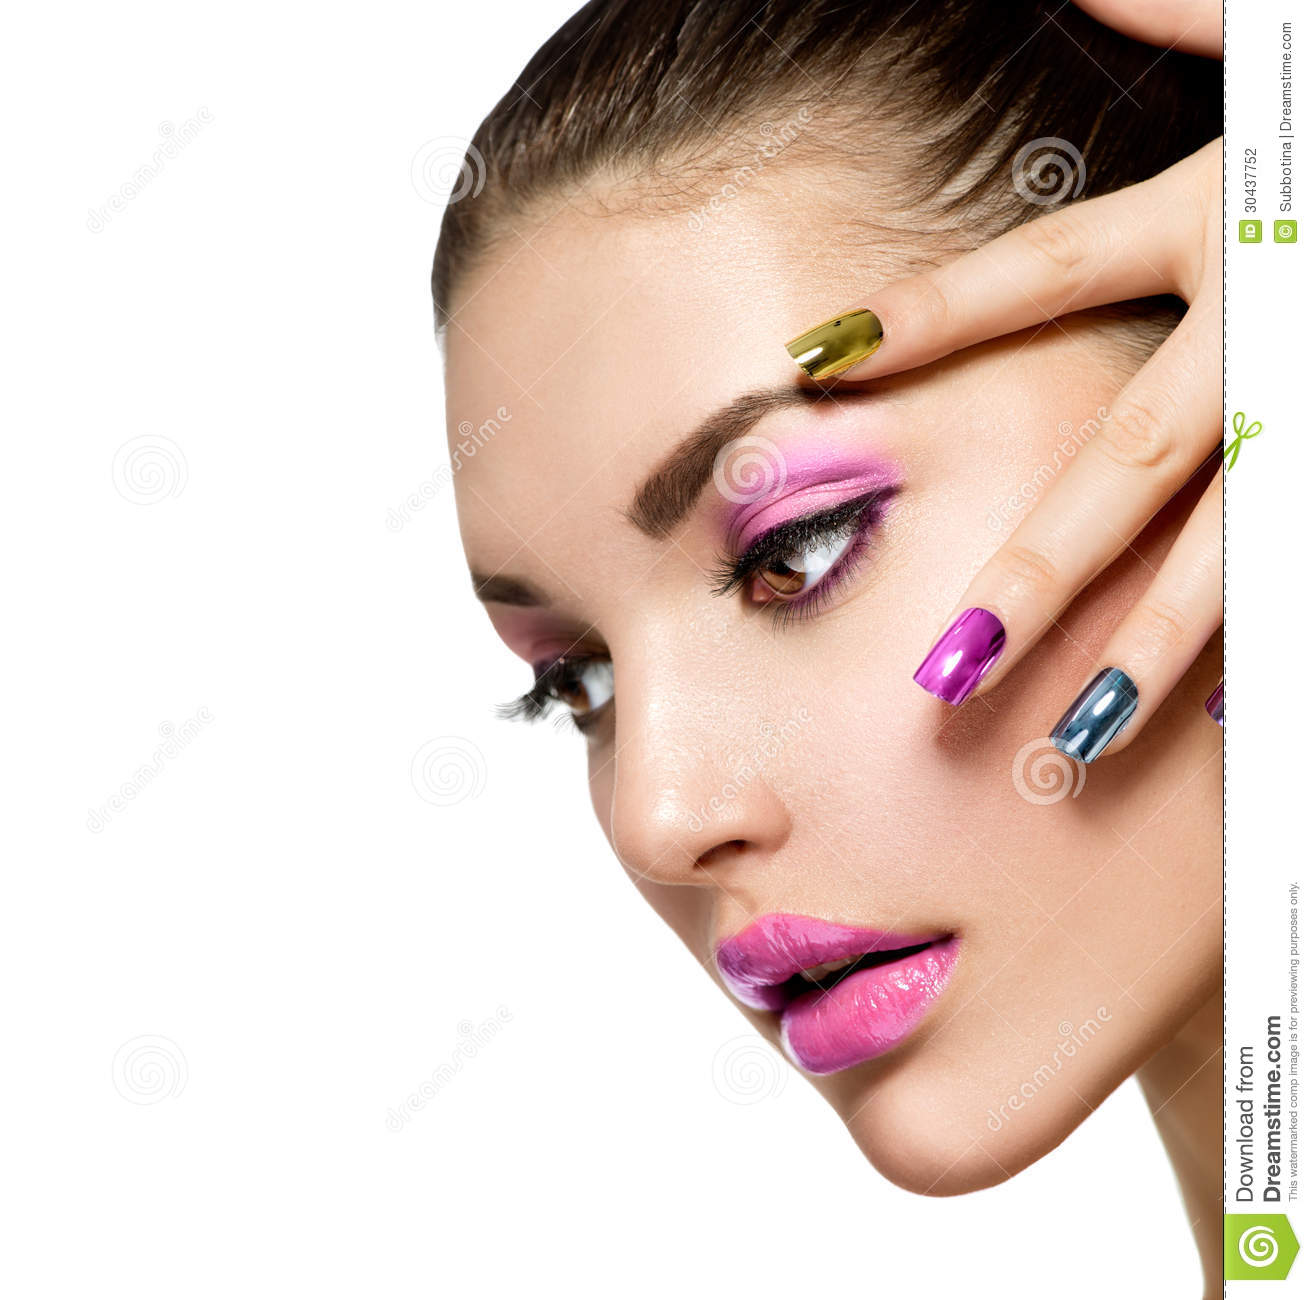 All 4u Hd Wallpaper Free Download Beautiful Nail Art: Beautiful Fashion Girls Face Stock Photo